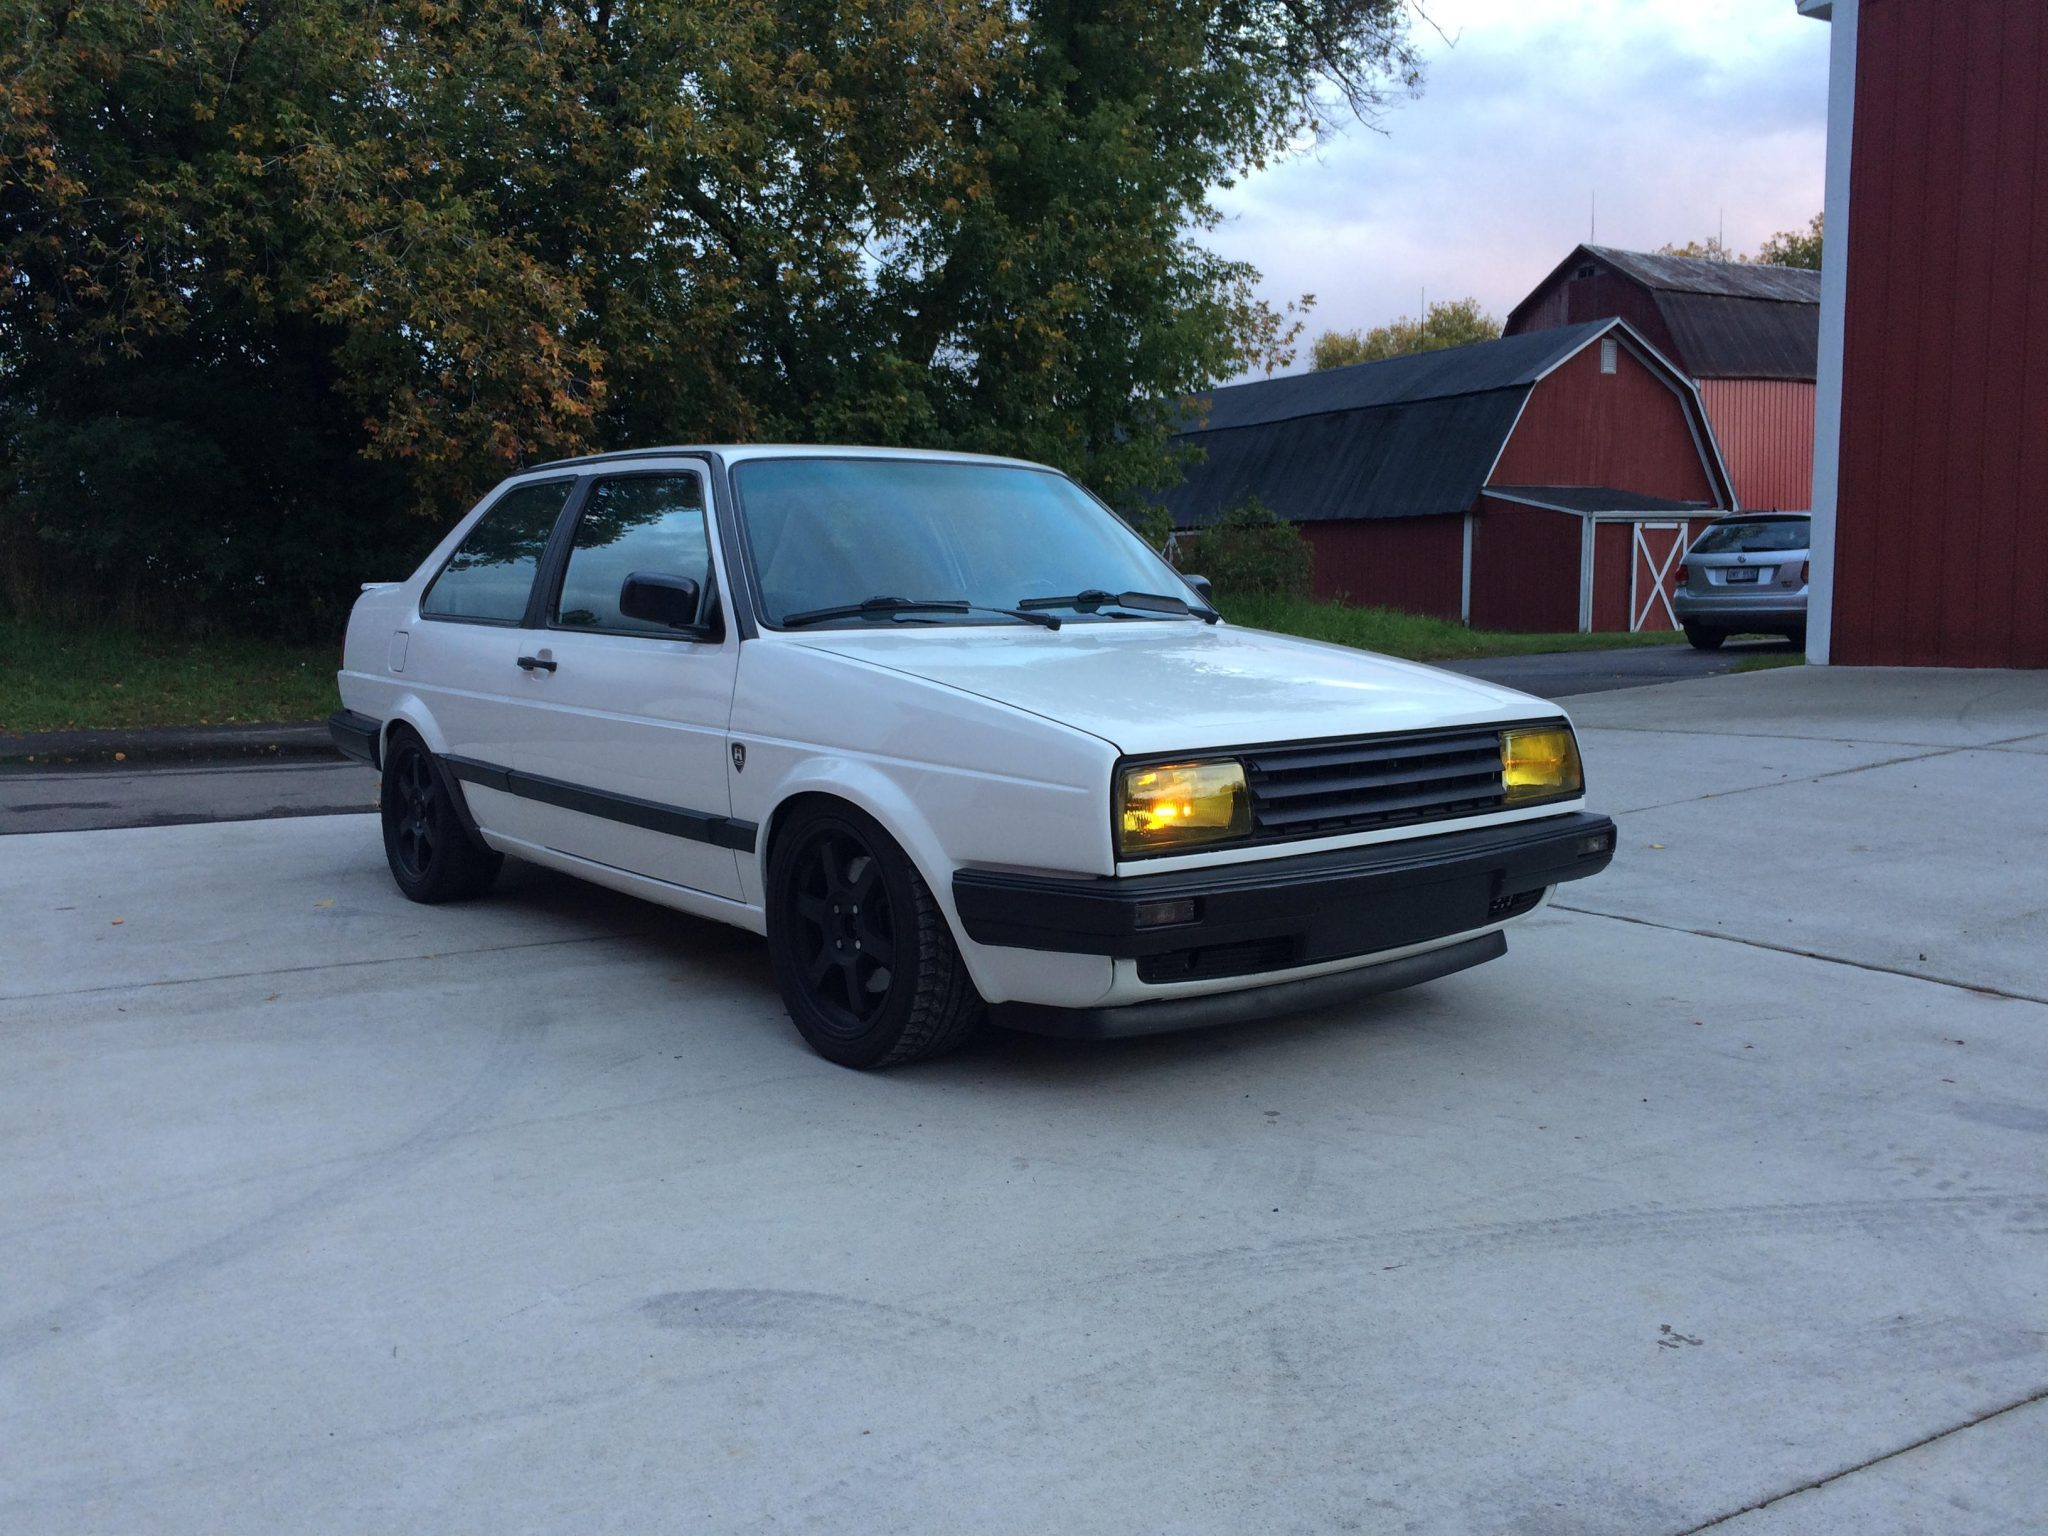 1989_volkswagen_jetta_1601605941c643ad59a03524806IMG_3465-scaled